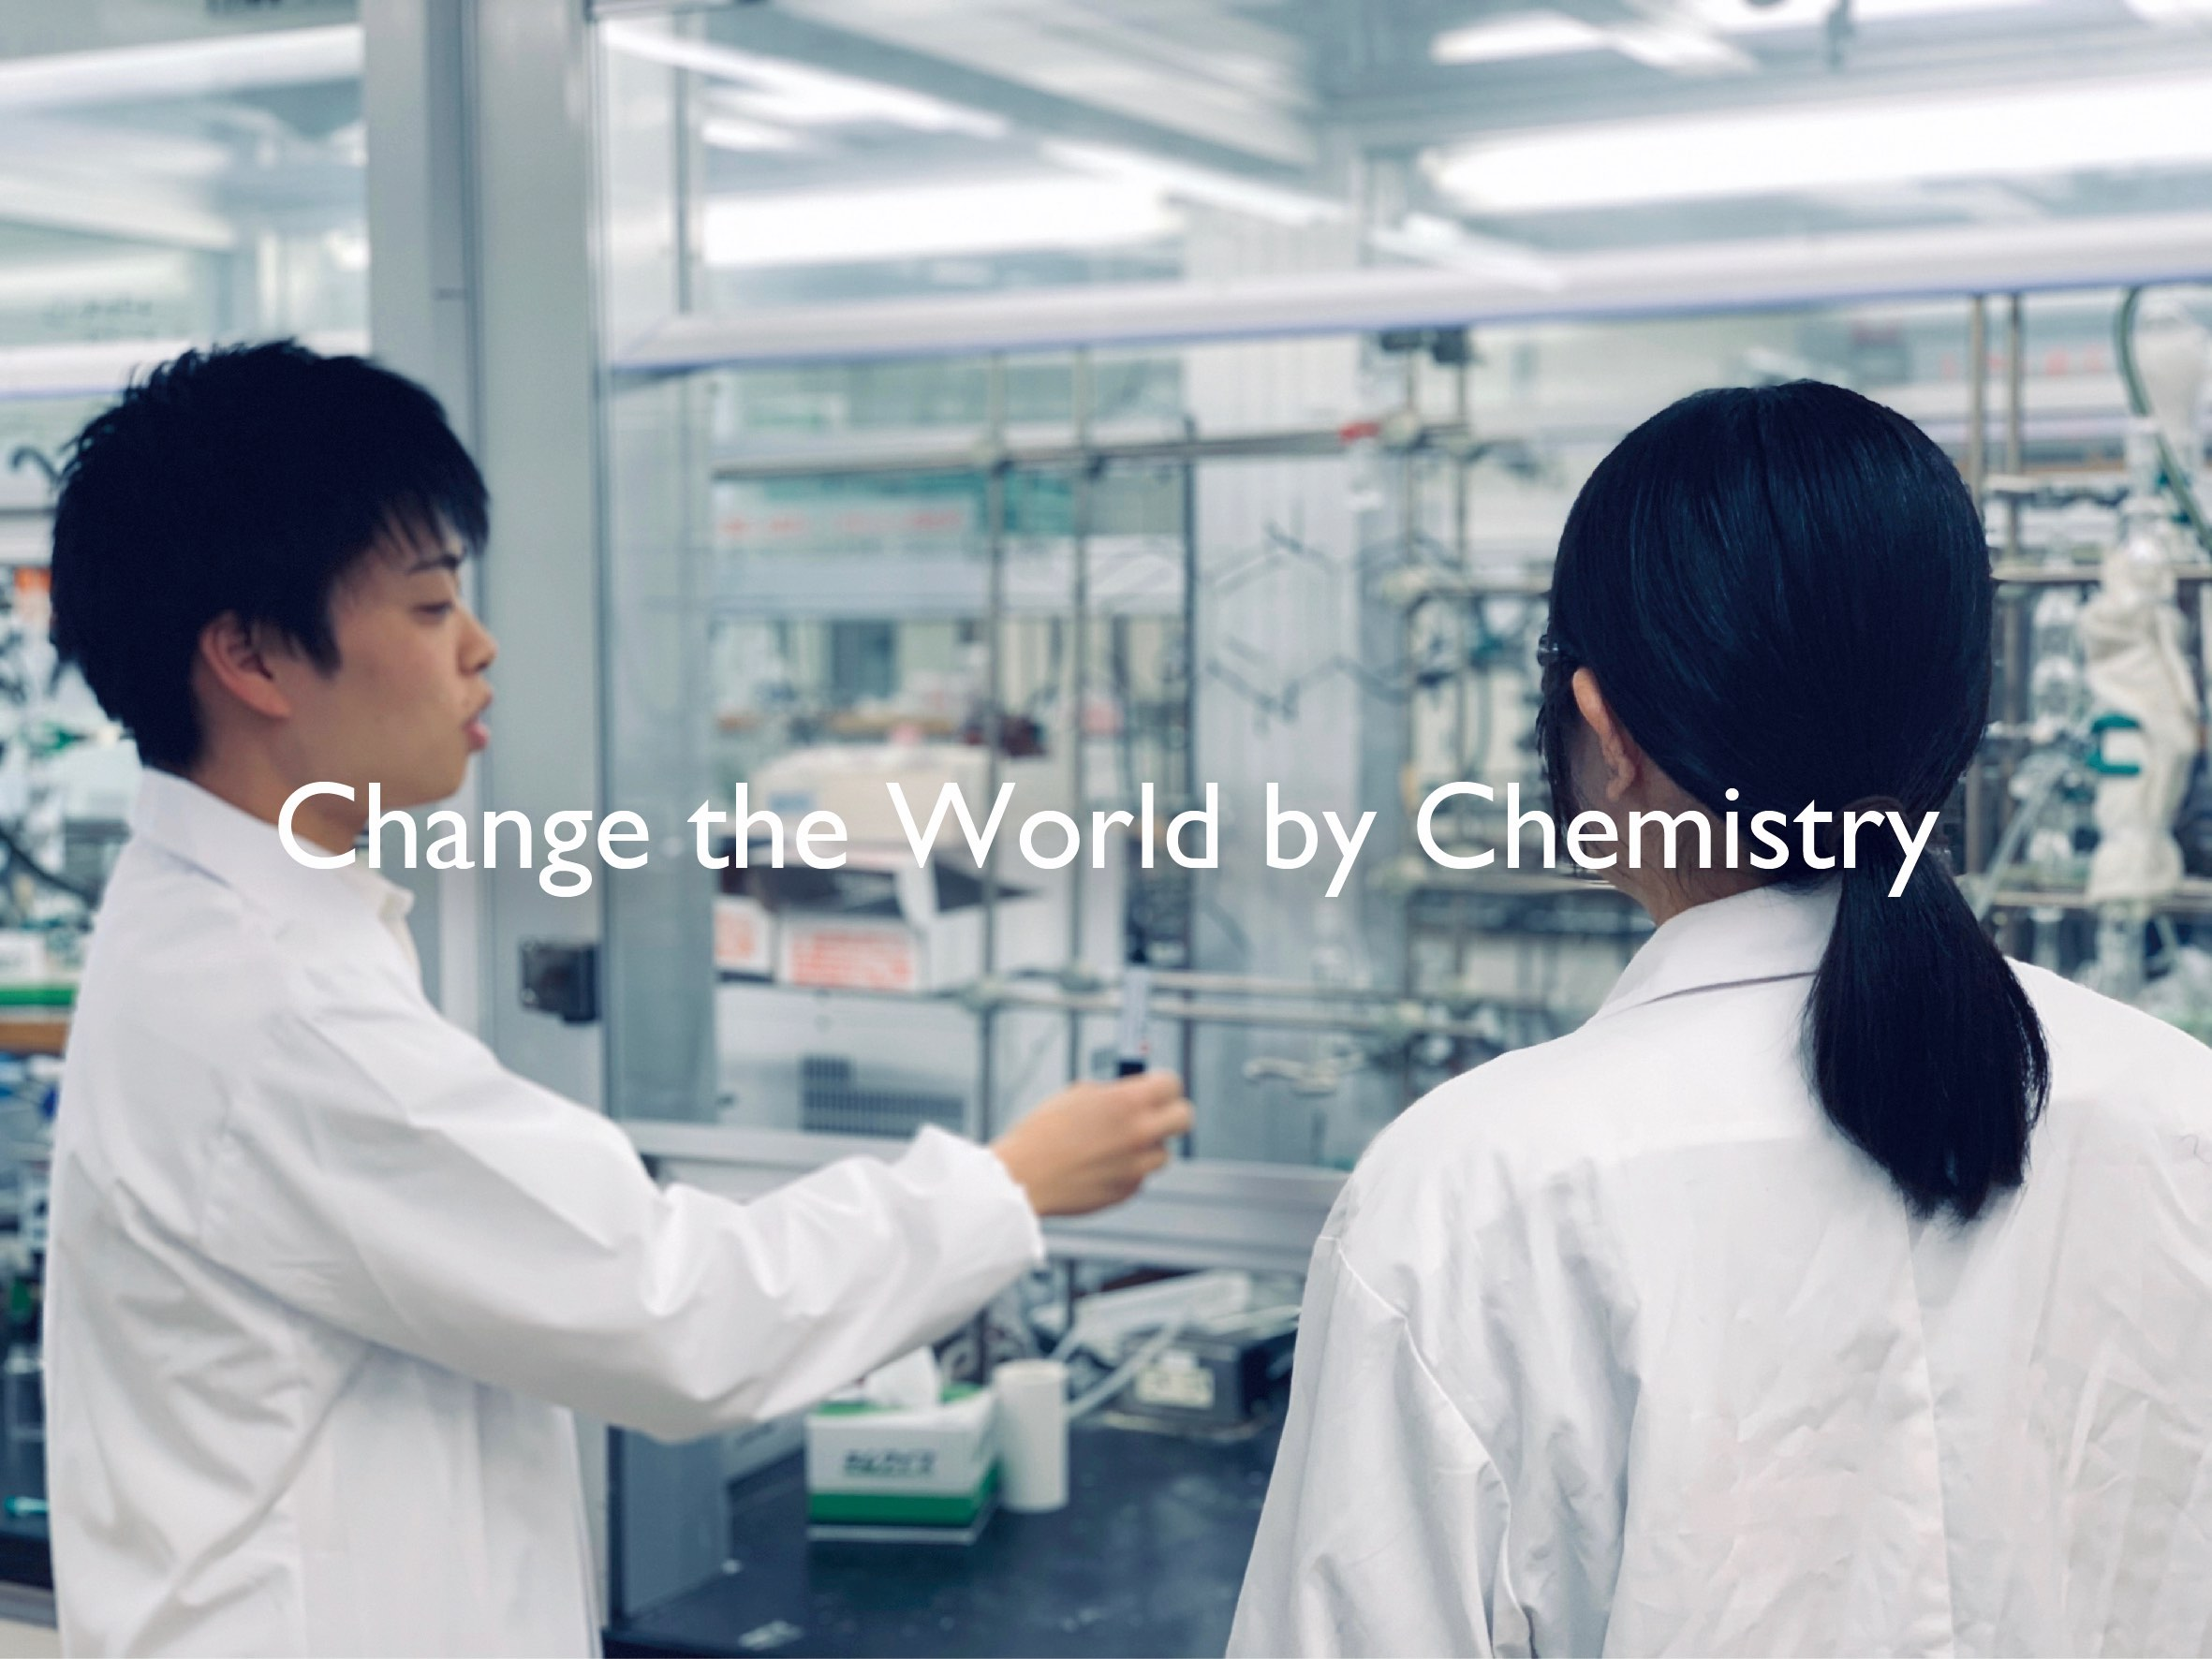 Change the World by Chemistry